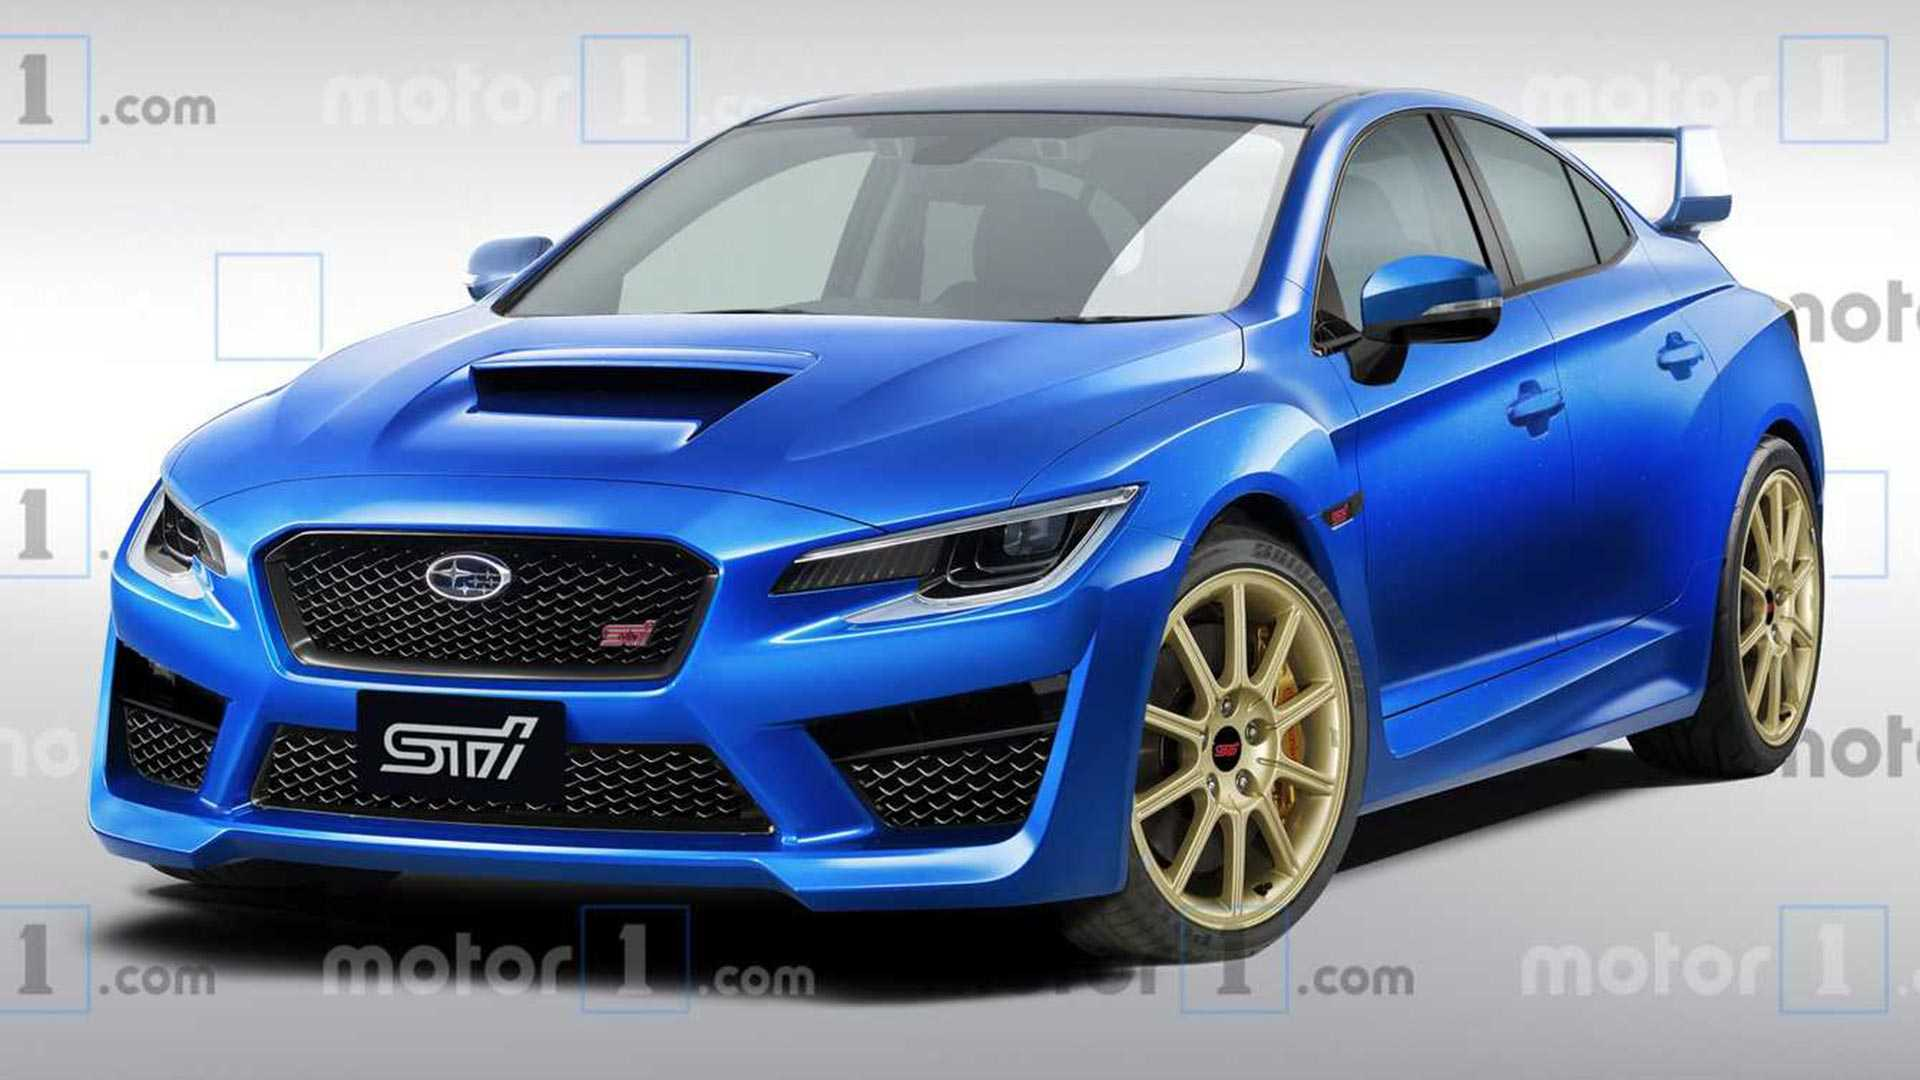 63 A Subaru Sti 2020 Horsepower Price And Release Date